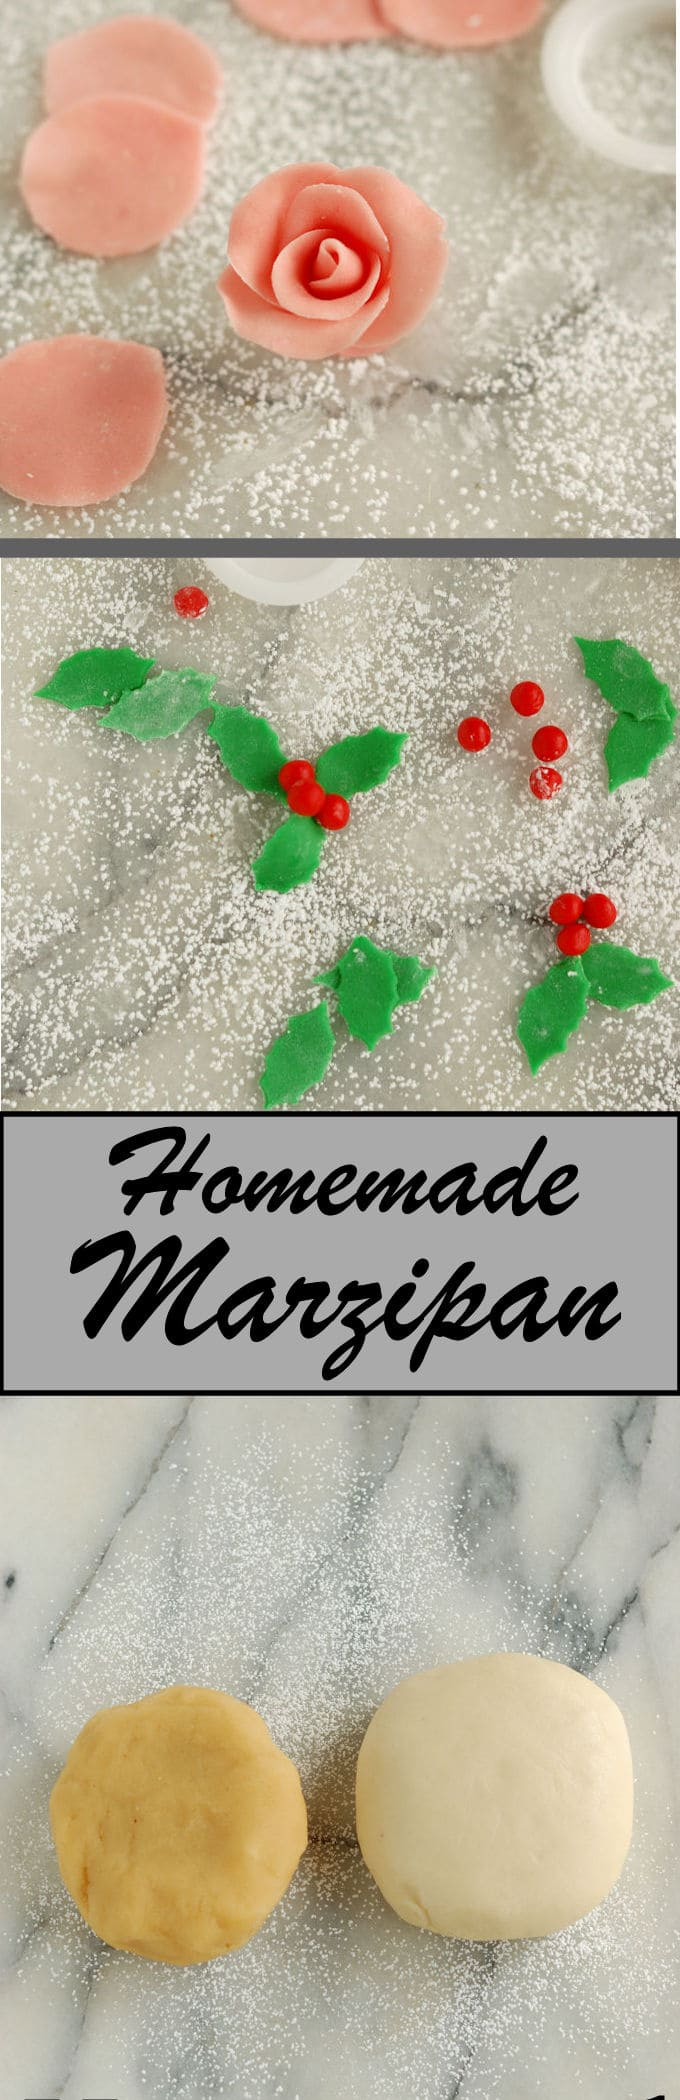 Homemade marzipan is cheaper & tastier than store bought. Just 3 ingredients and 5 minutes to make.